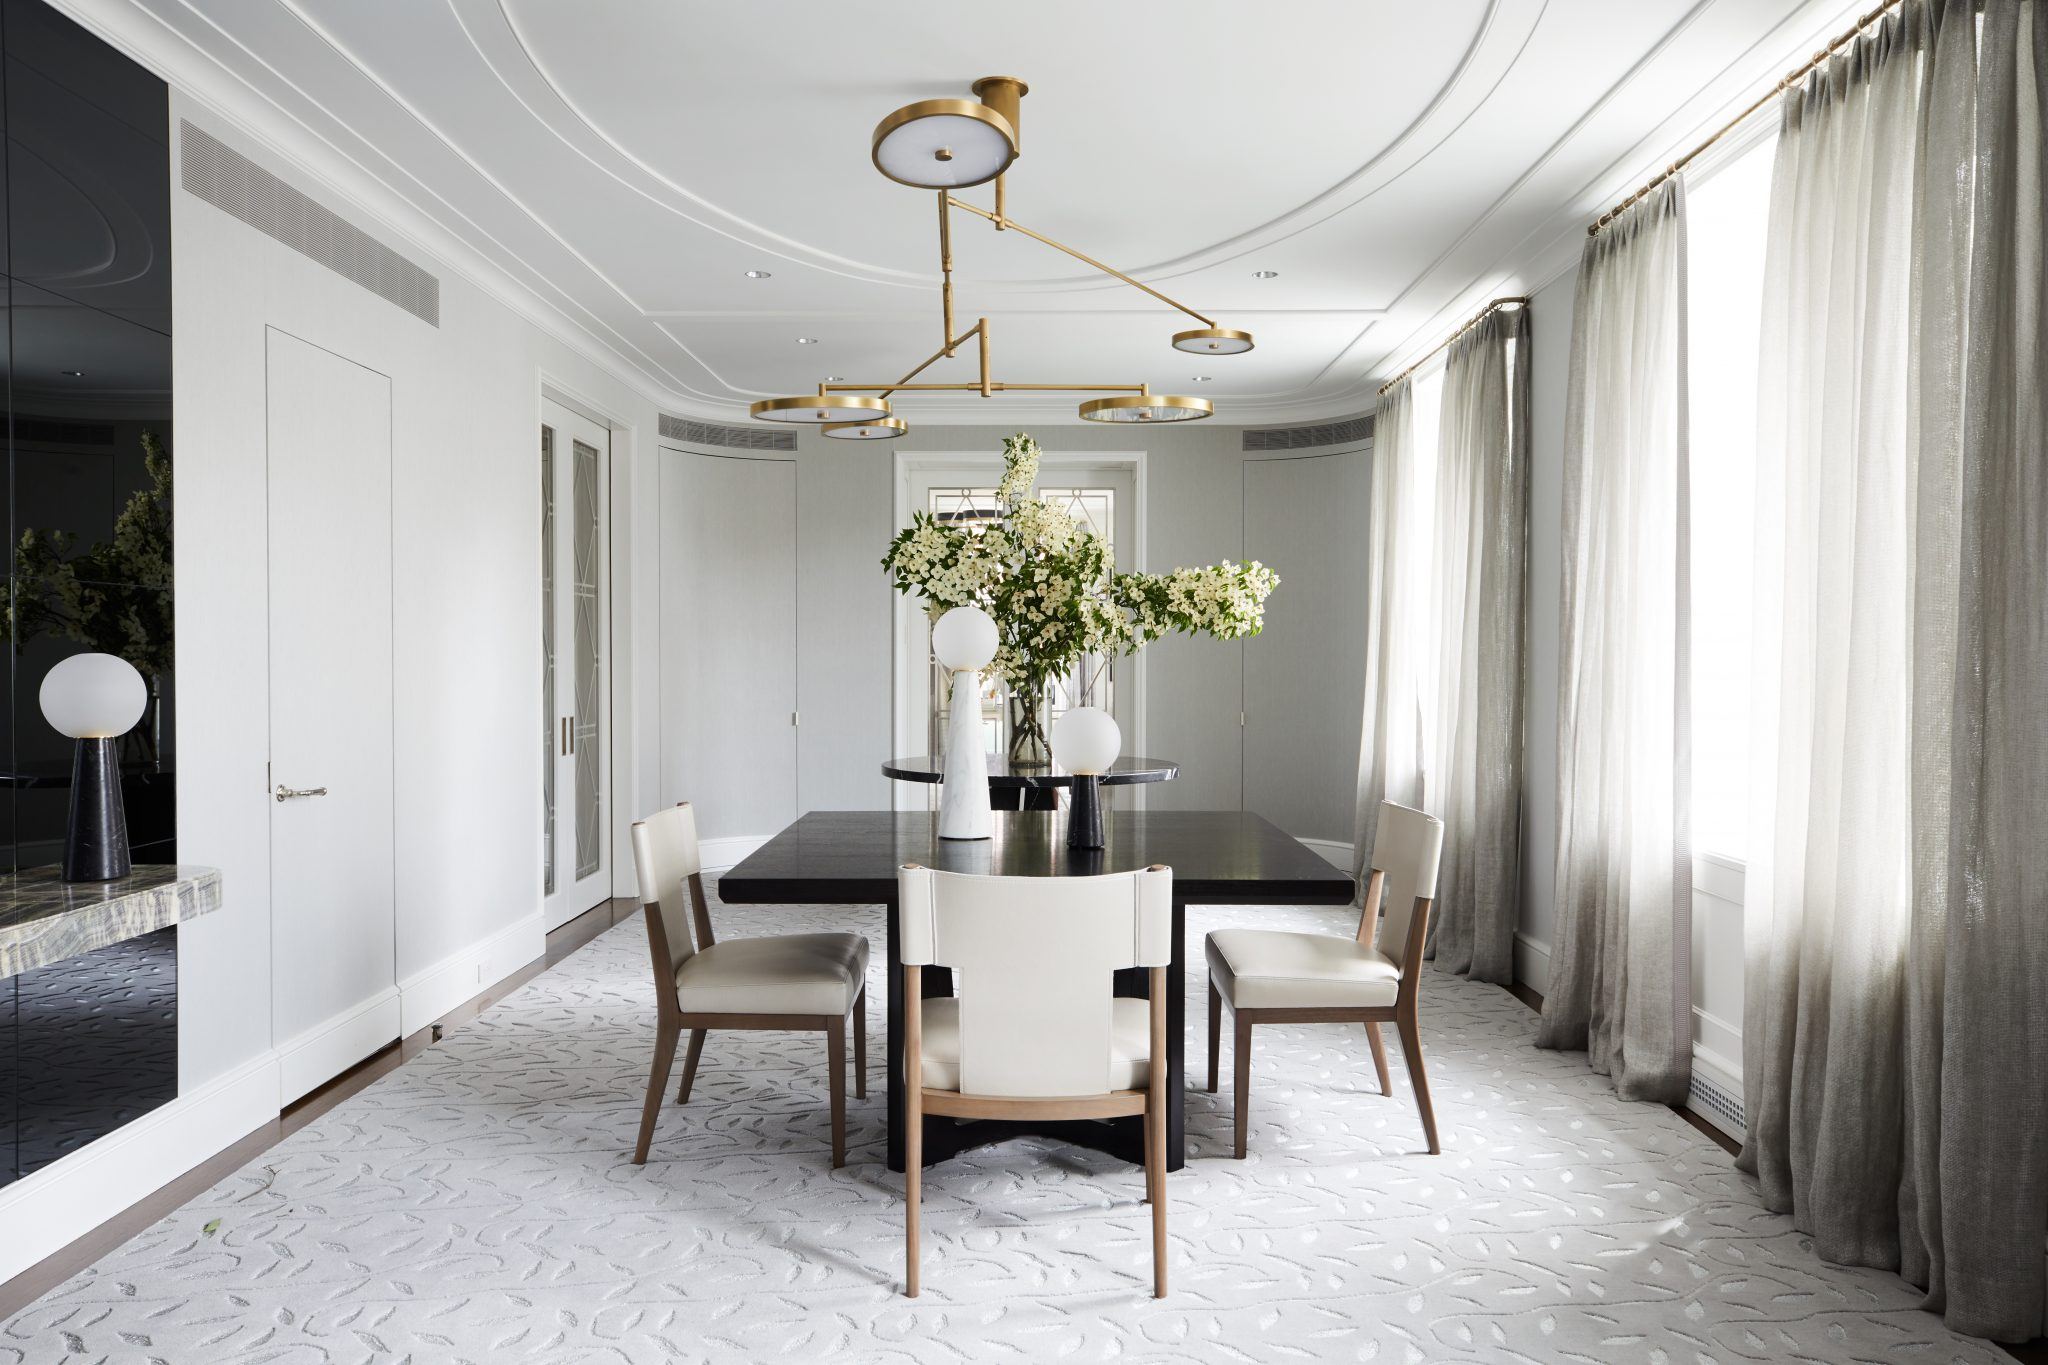 Good Flexible Formal Dining Room In Park Avenue Modern Apartment. Full Screen